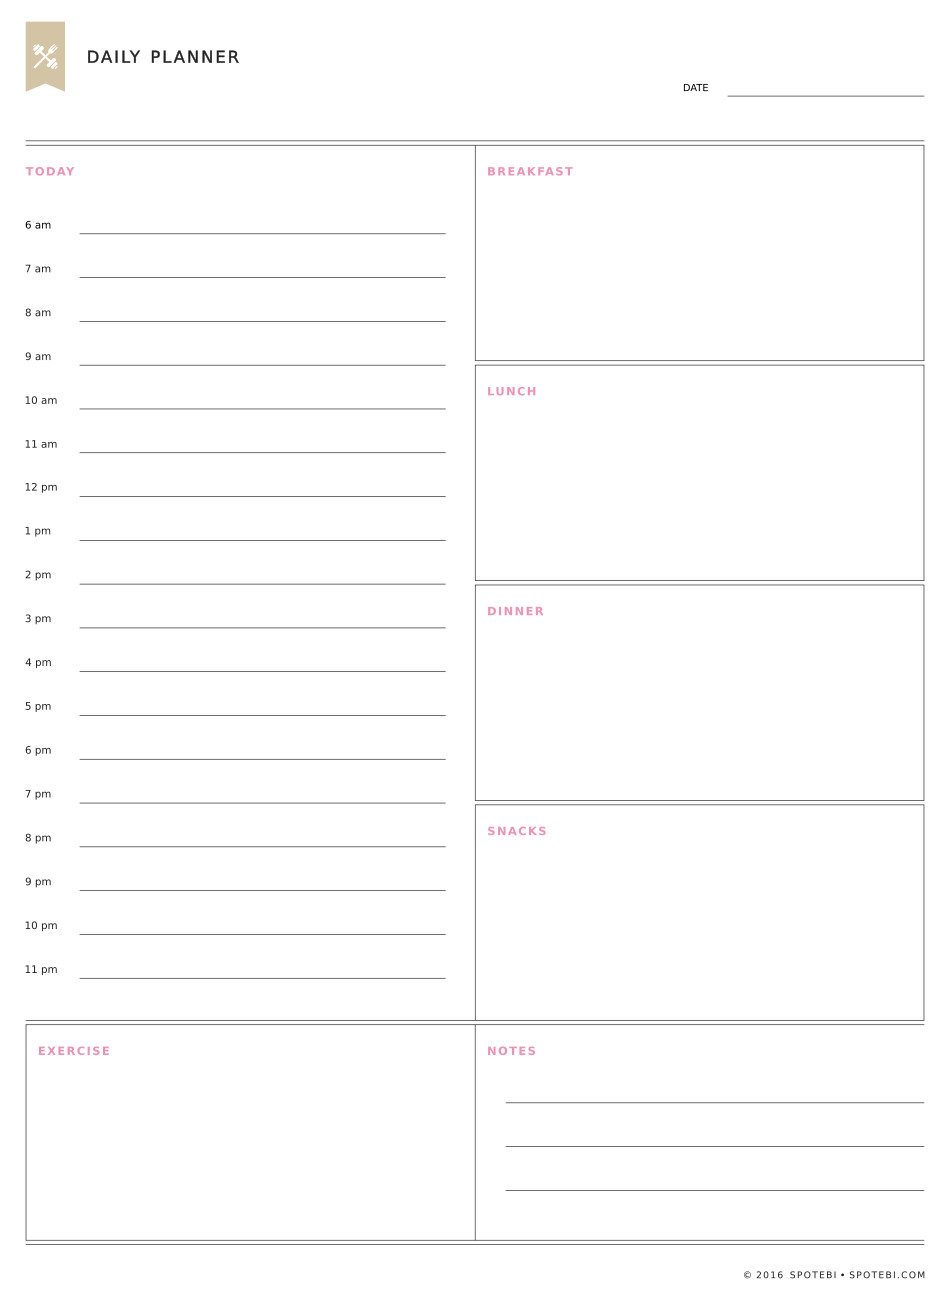 Planning Our Day The Night Before Helps Us Be More Productive And Makes Our  Everyday Lives  Downloadable Daily Planner